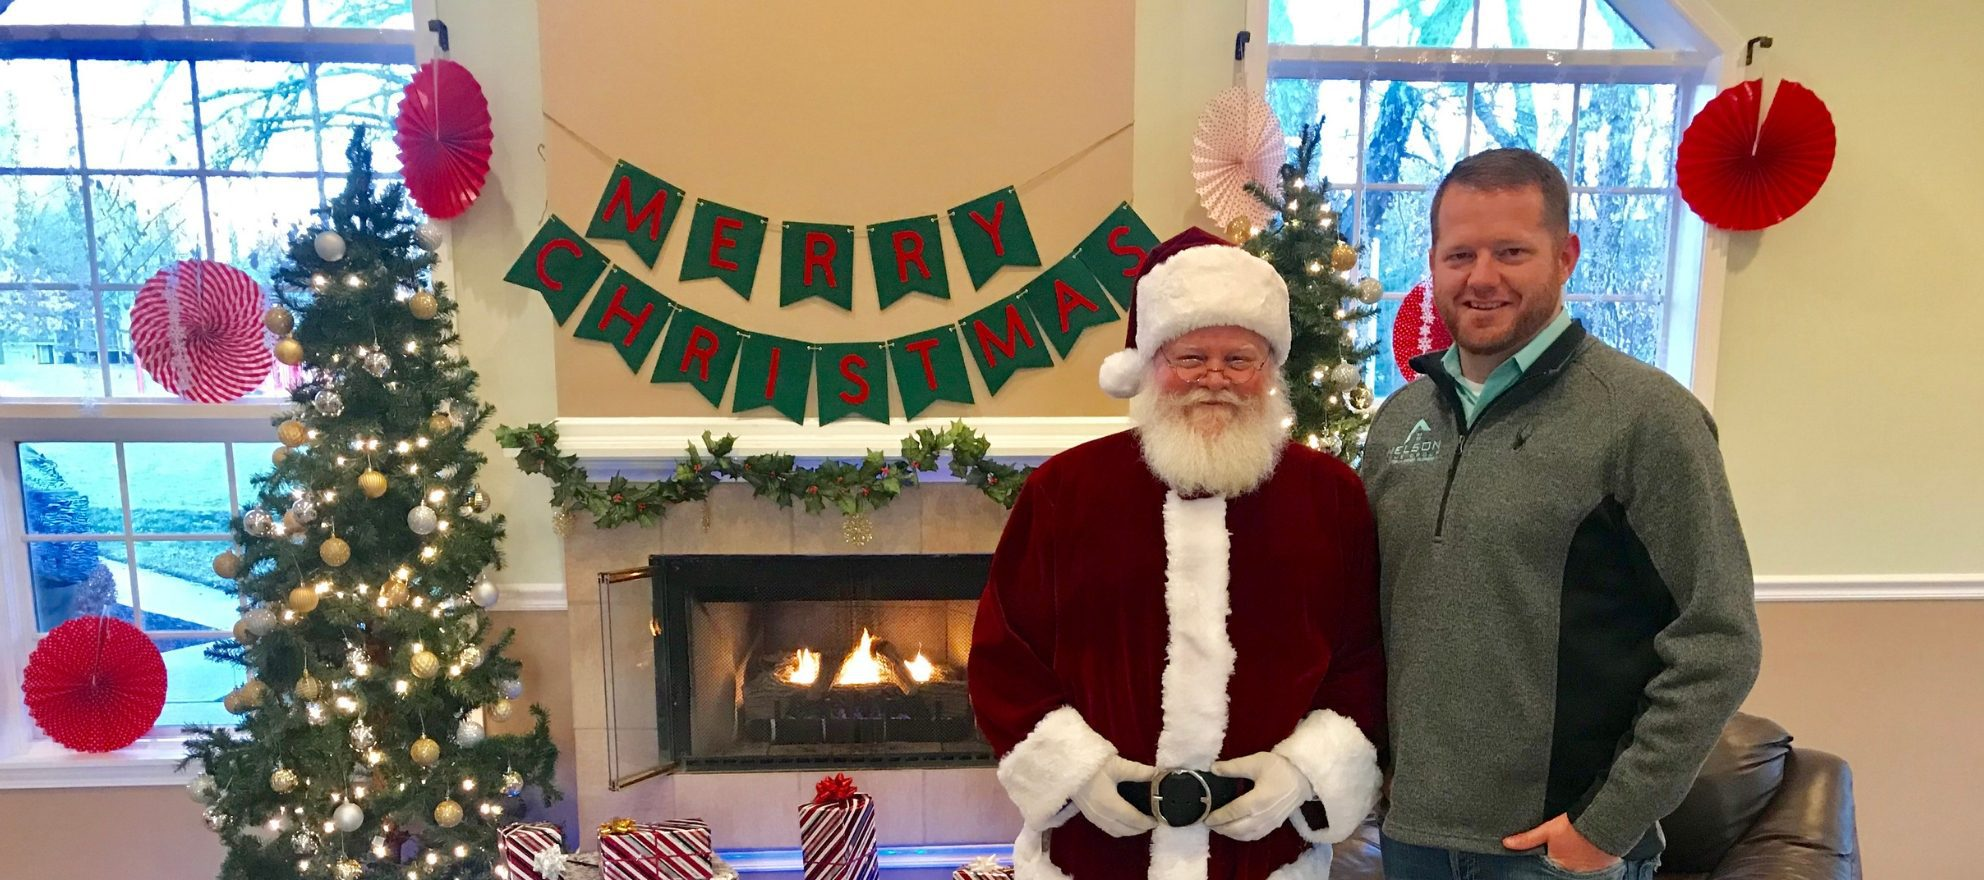 How Santa Claus helped a Keller Williams agent score clients